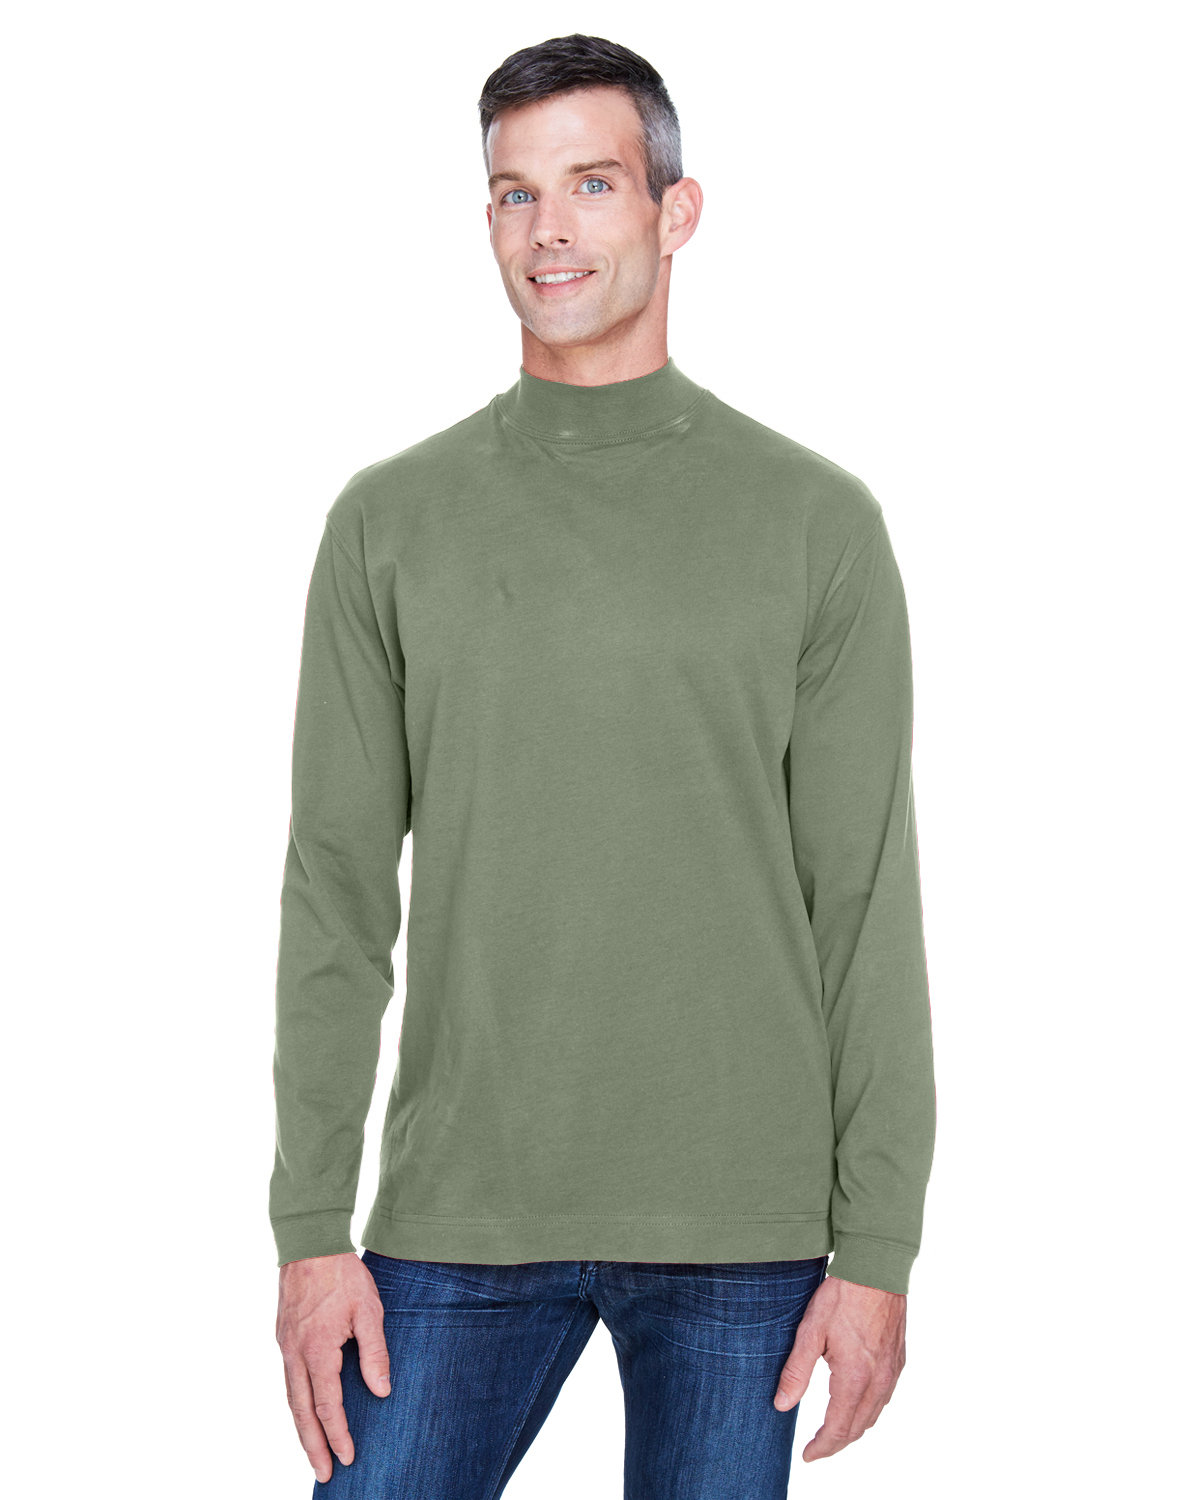 Devon & Jones Adult Sueded Cotton Jersey Mock Turtleneck DILL